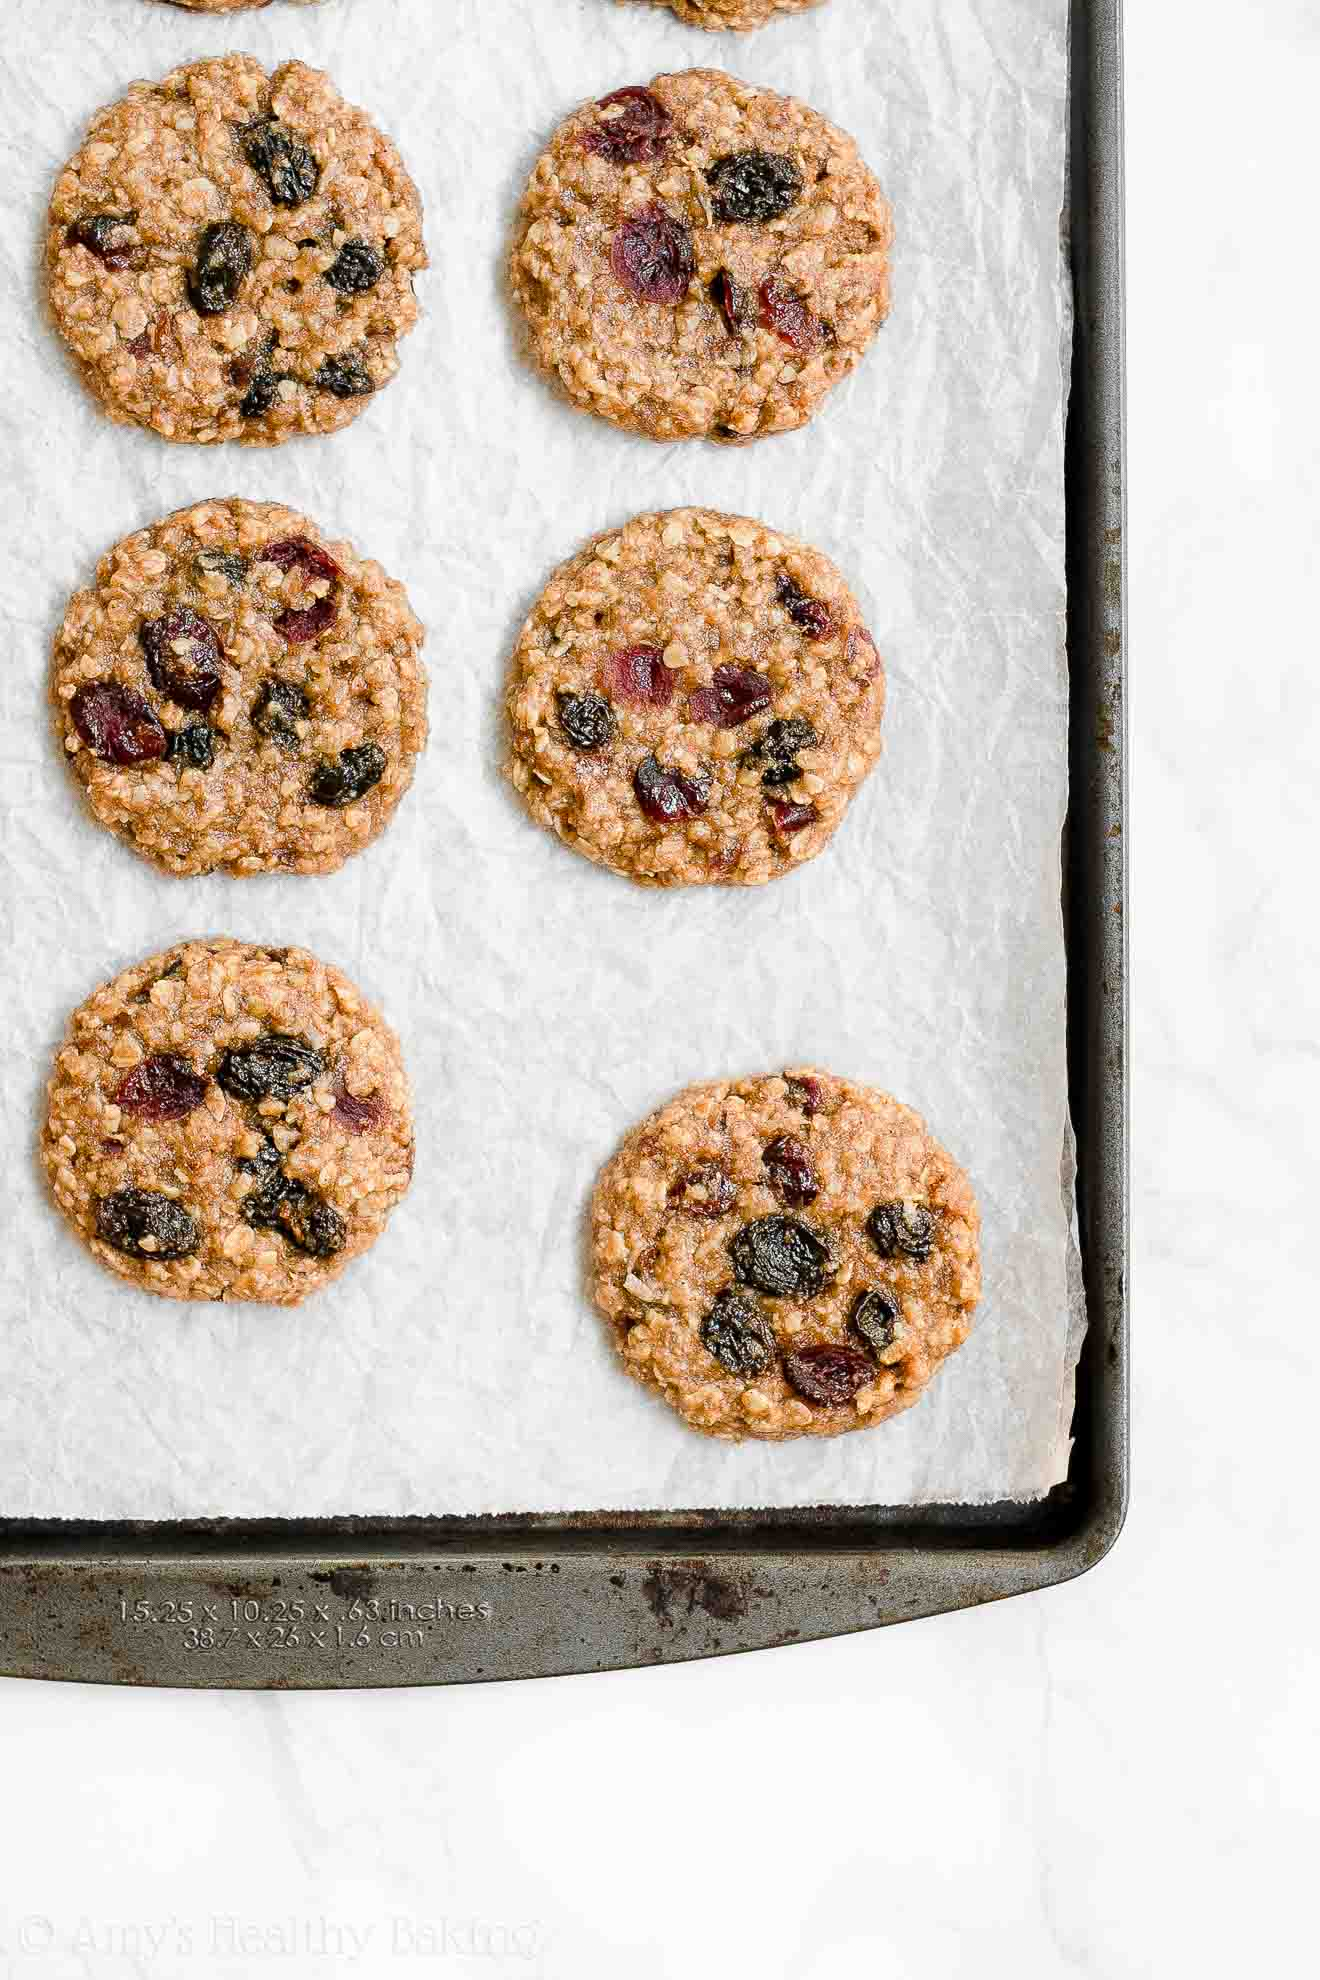 Healthy Low Fat Harvest Oatmeal Cookies with dried cranberries, raisins & nuts